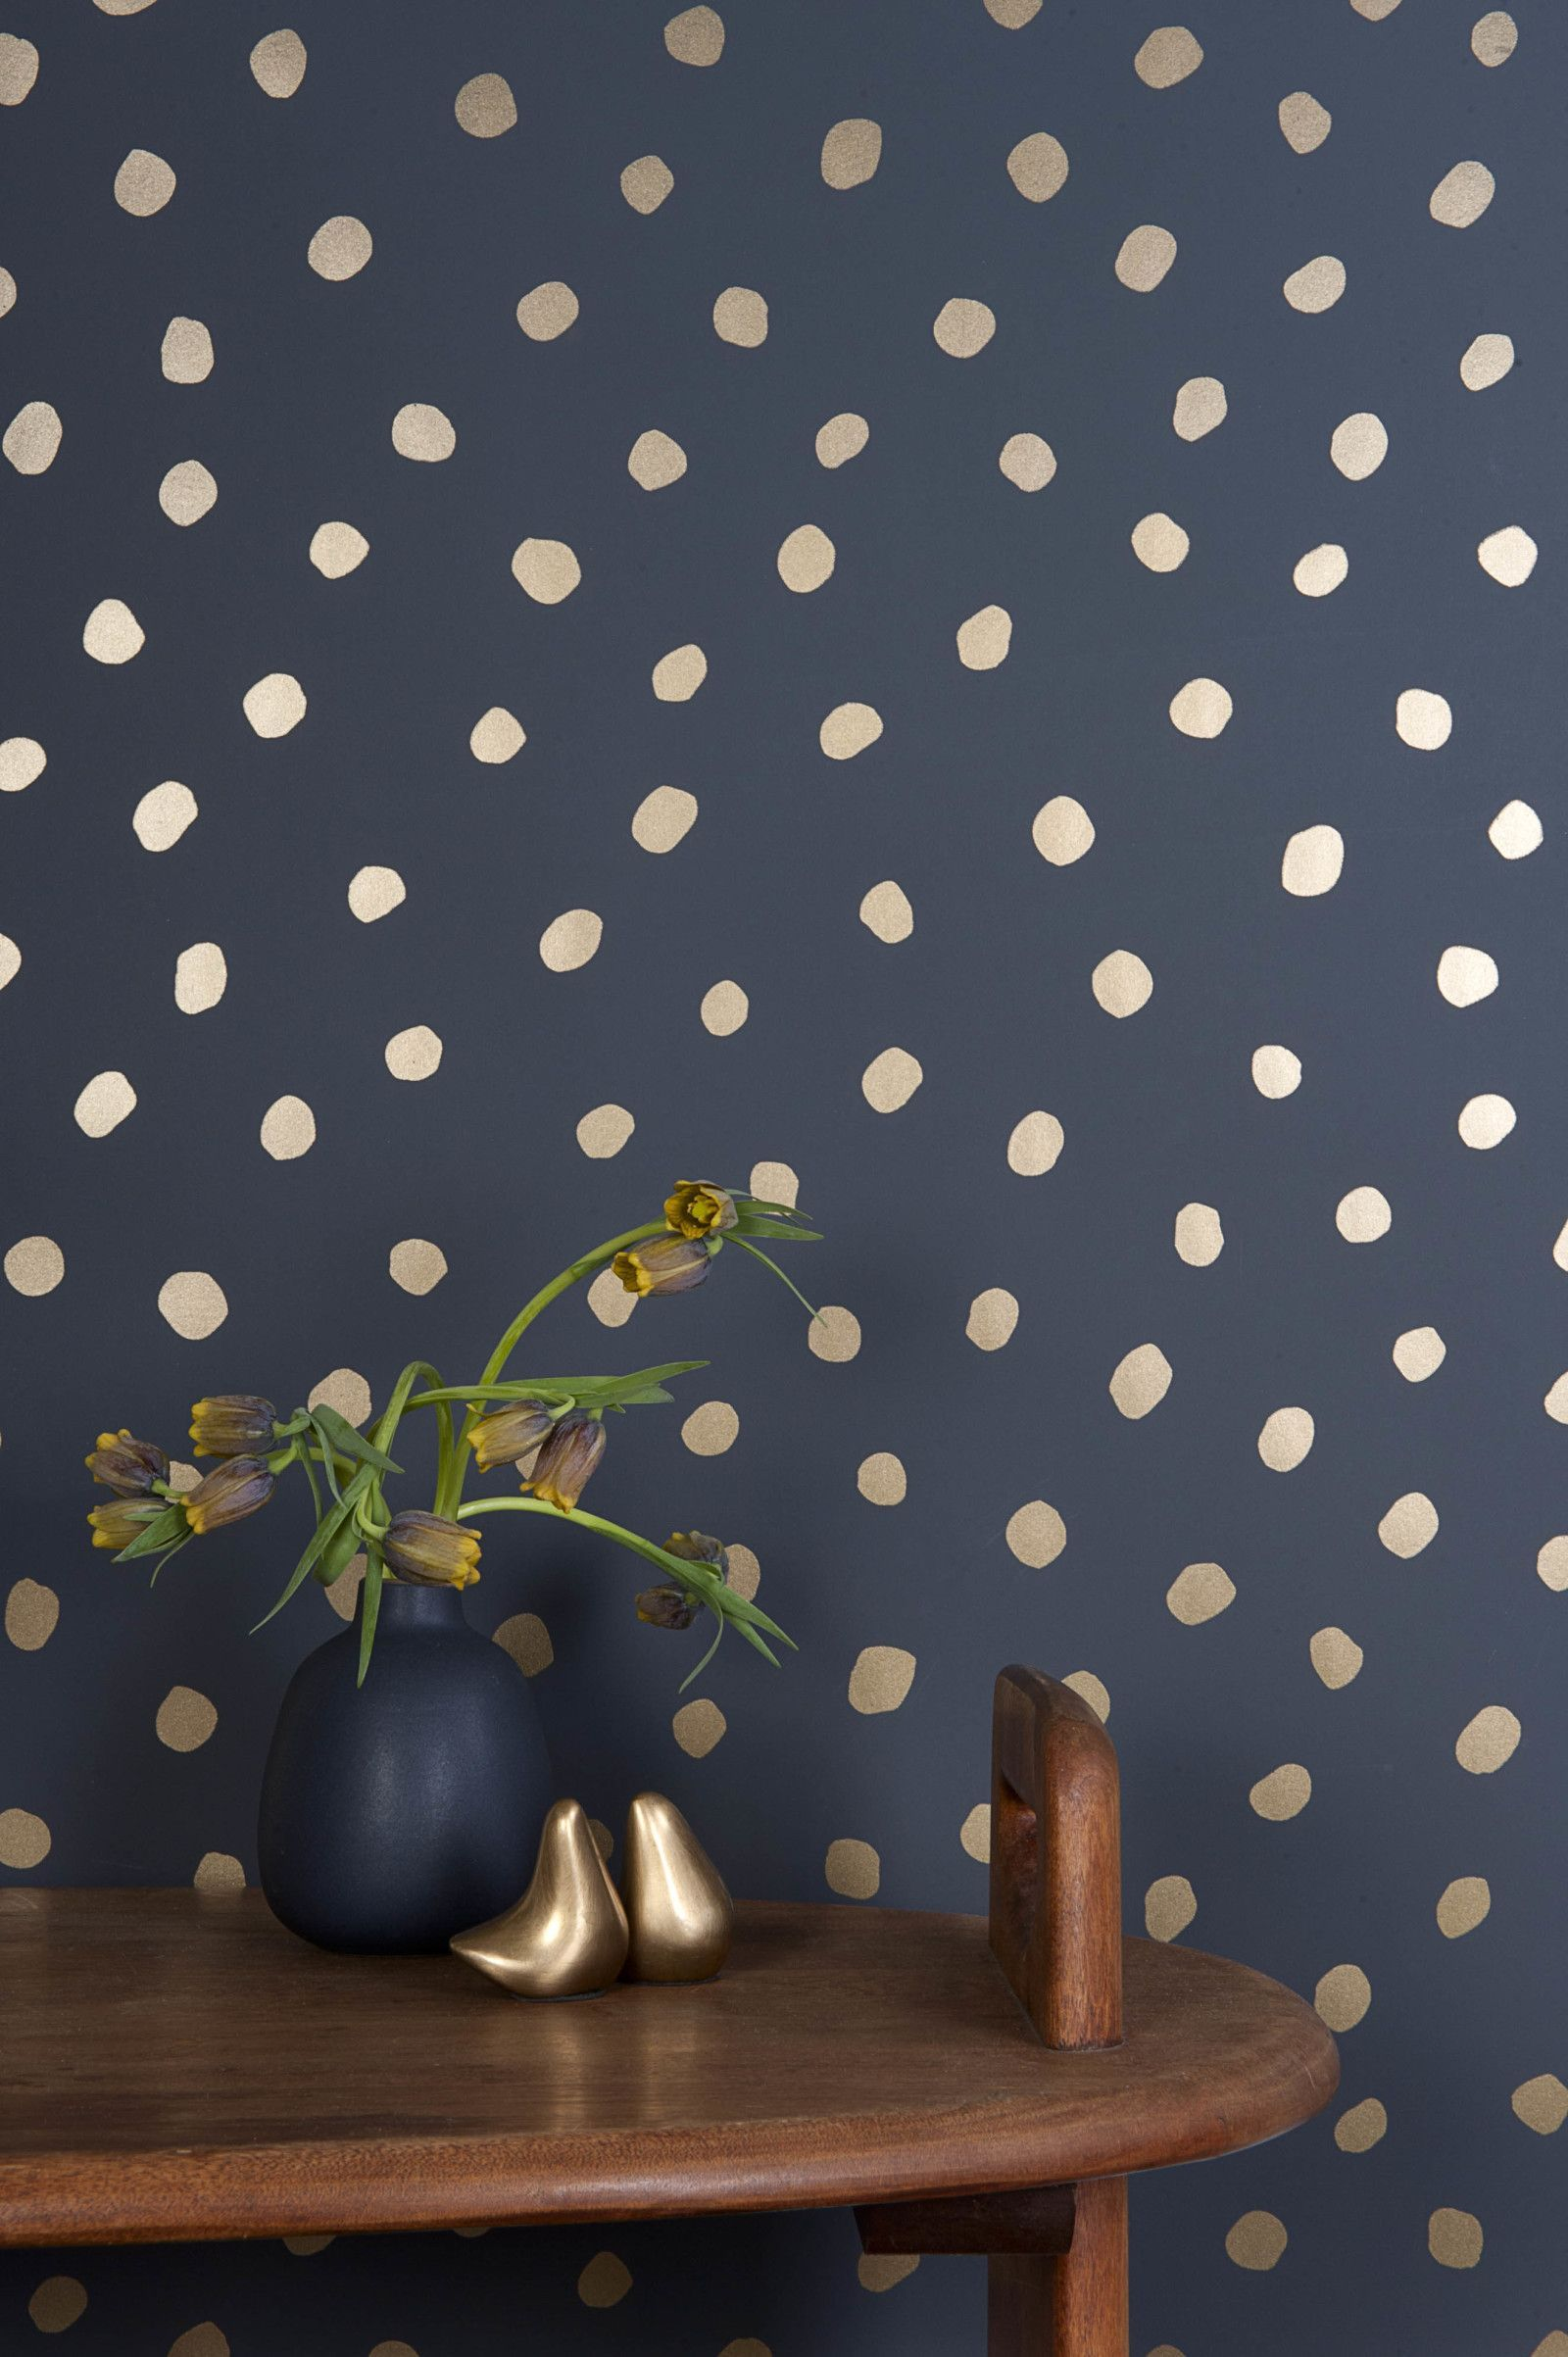 Want Irregular Navy Blue And Gold Polk Dots Not Having To Pay 200usd For A 4 5 Metre Roll